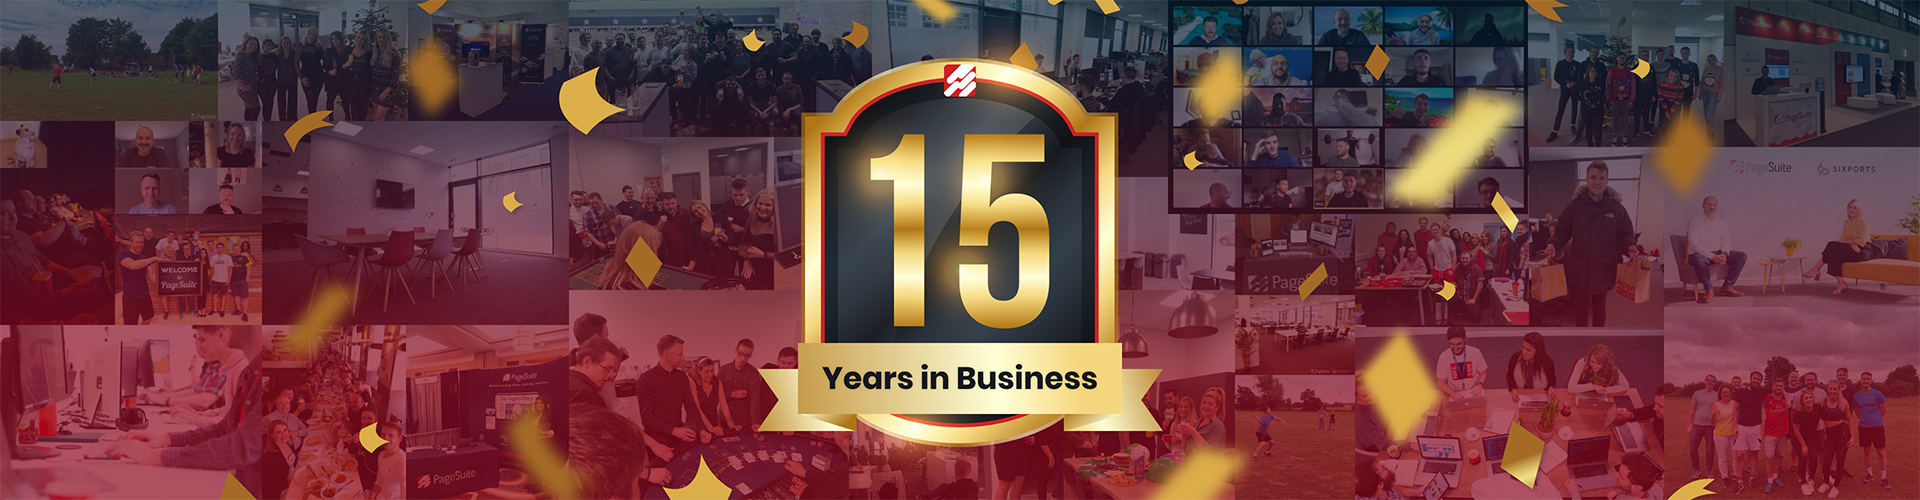 Image of Press Release: PageSuite Celebrates 15 Years in Business